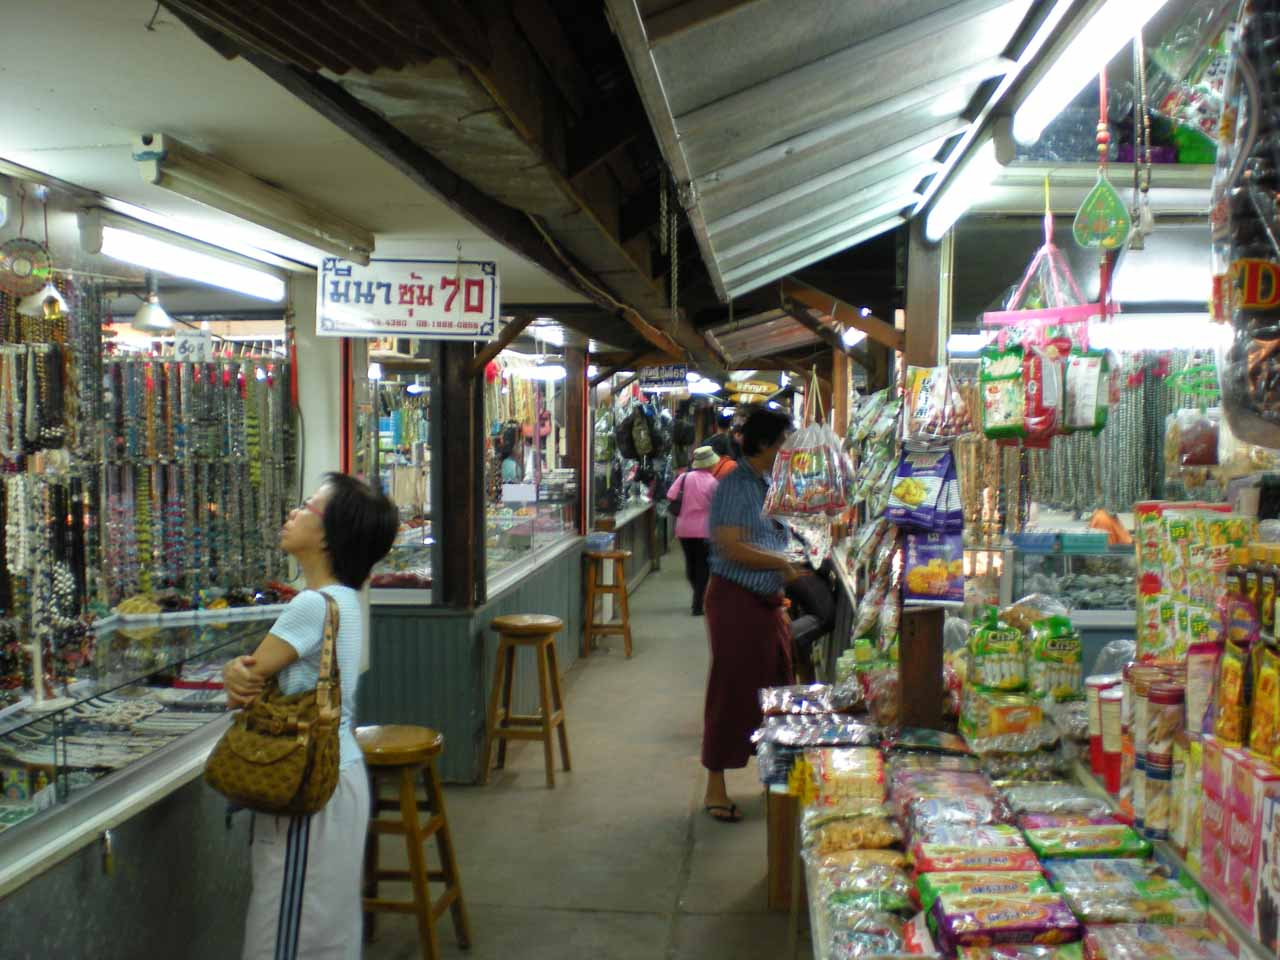 Inside the local market by the River Moeri